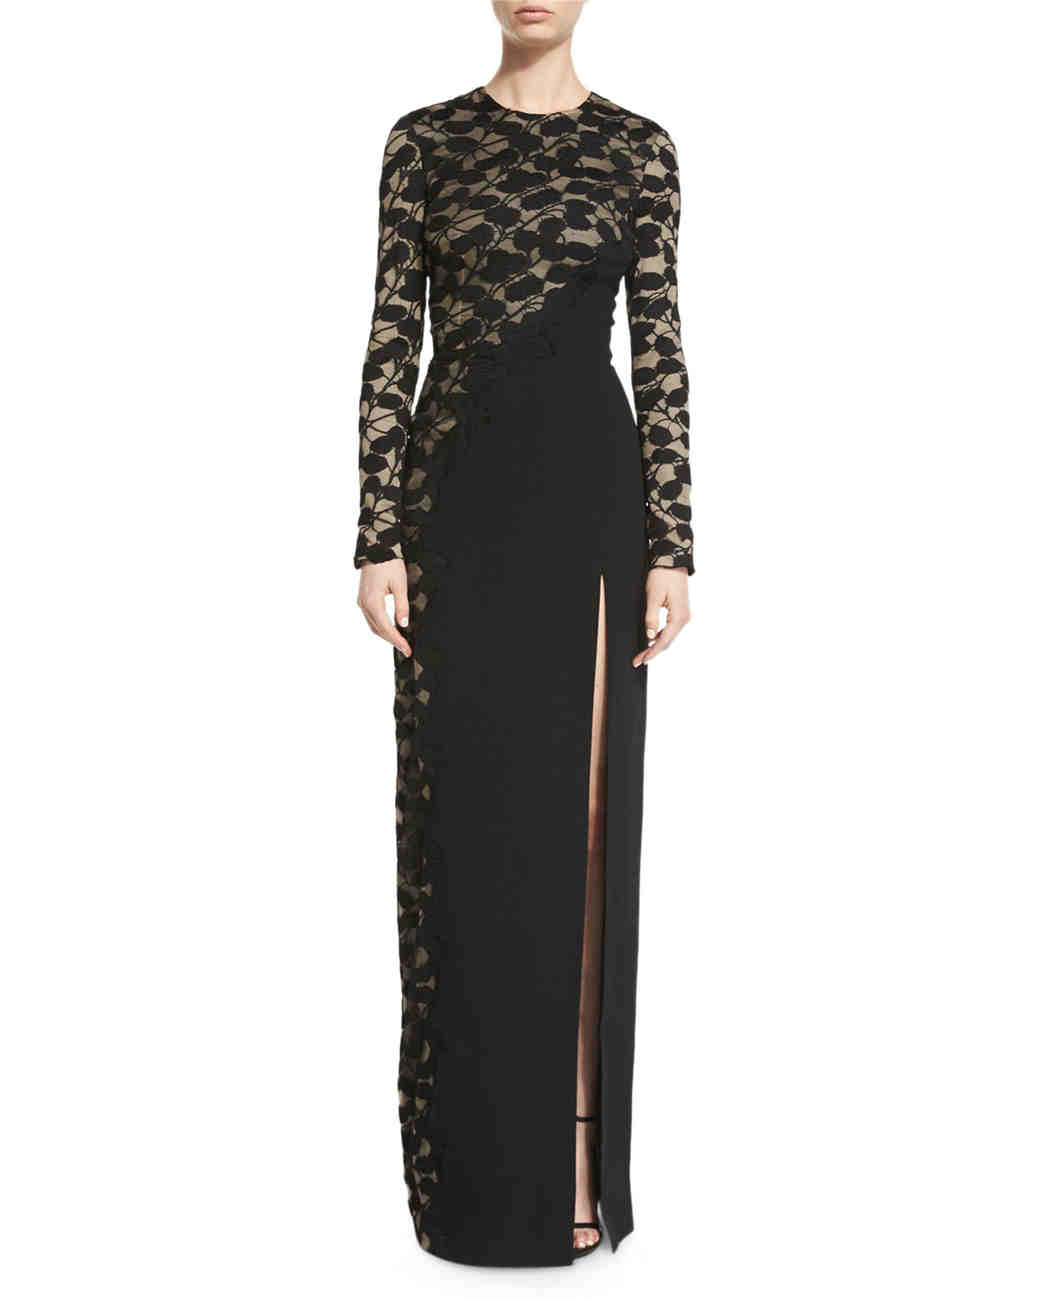 Black Long-Sleeved Lace Gown